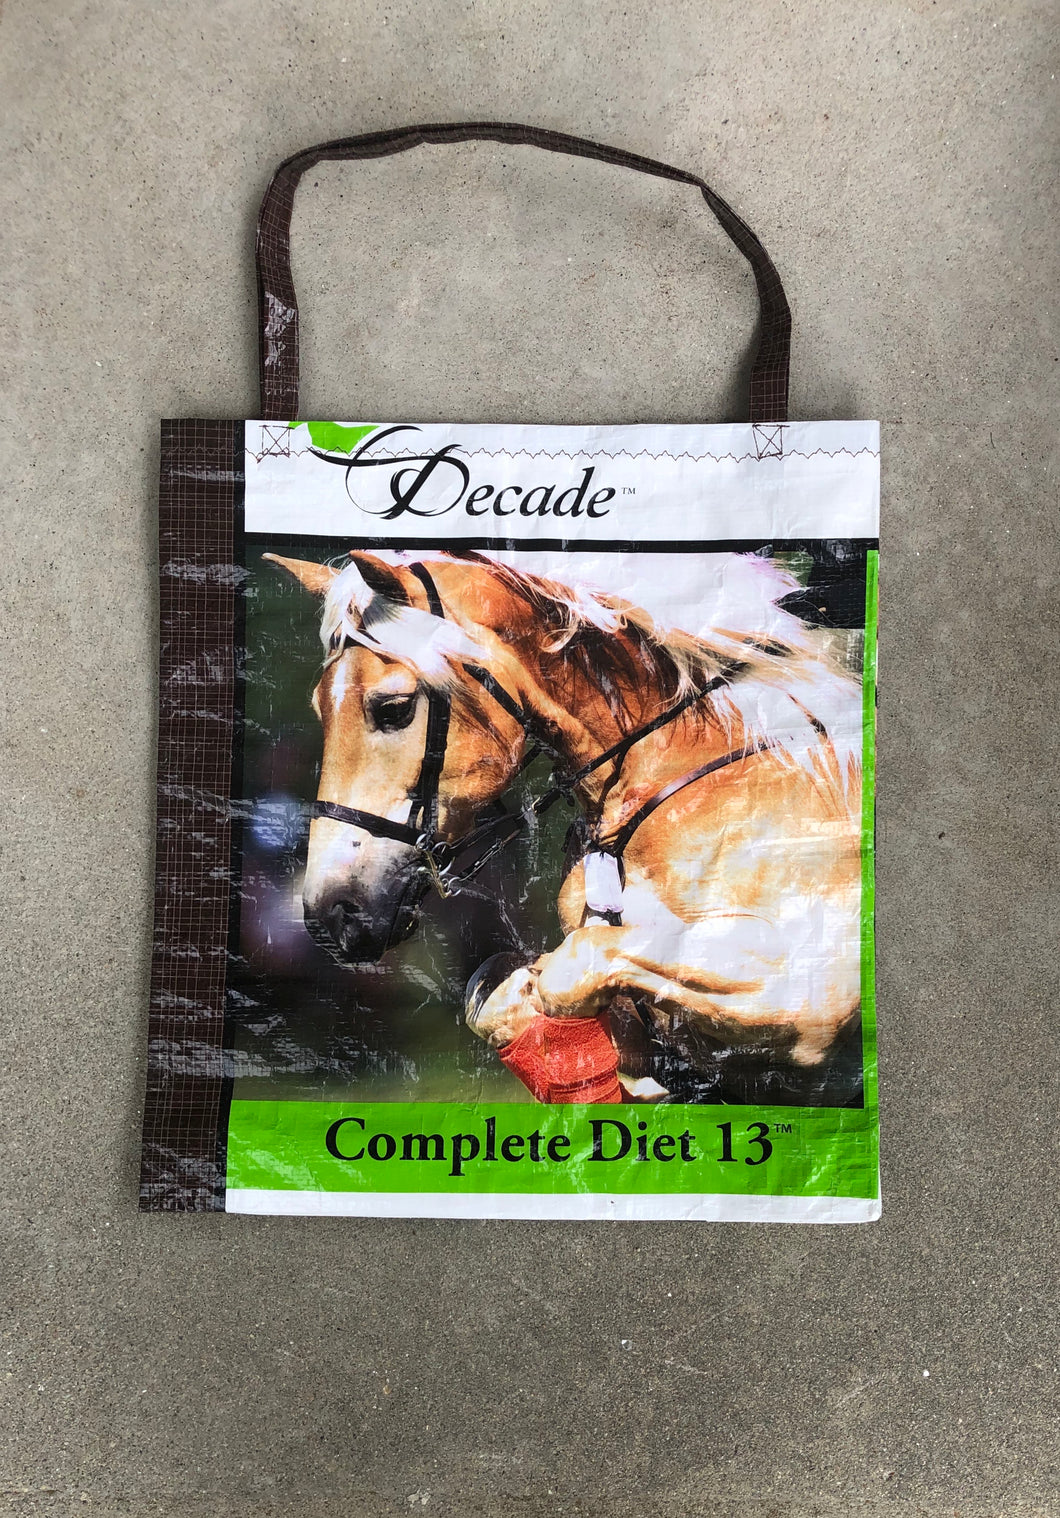 Decade Complete Diet 13 Tote Bag